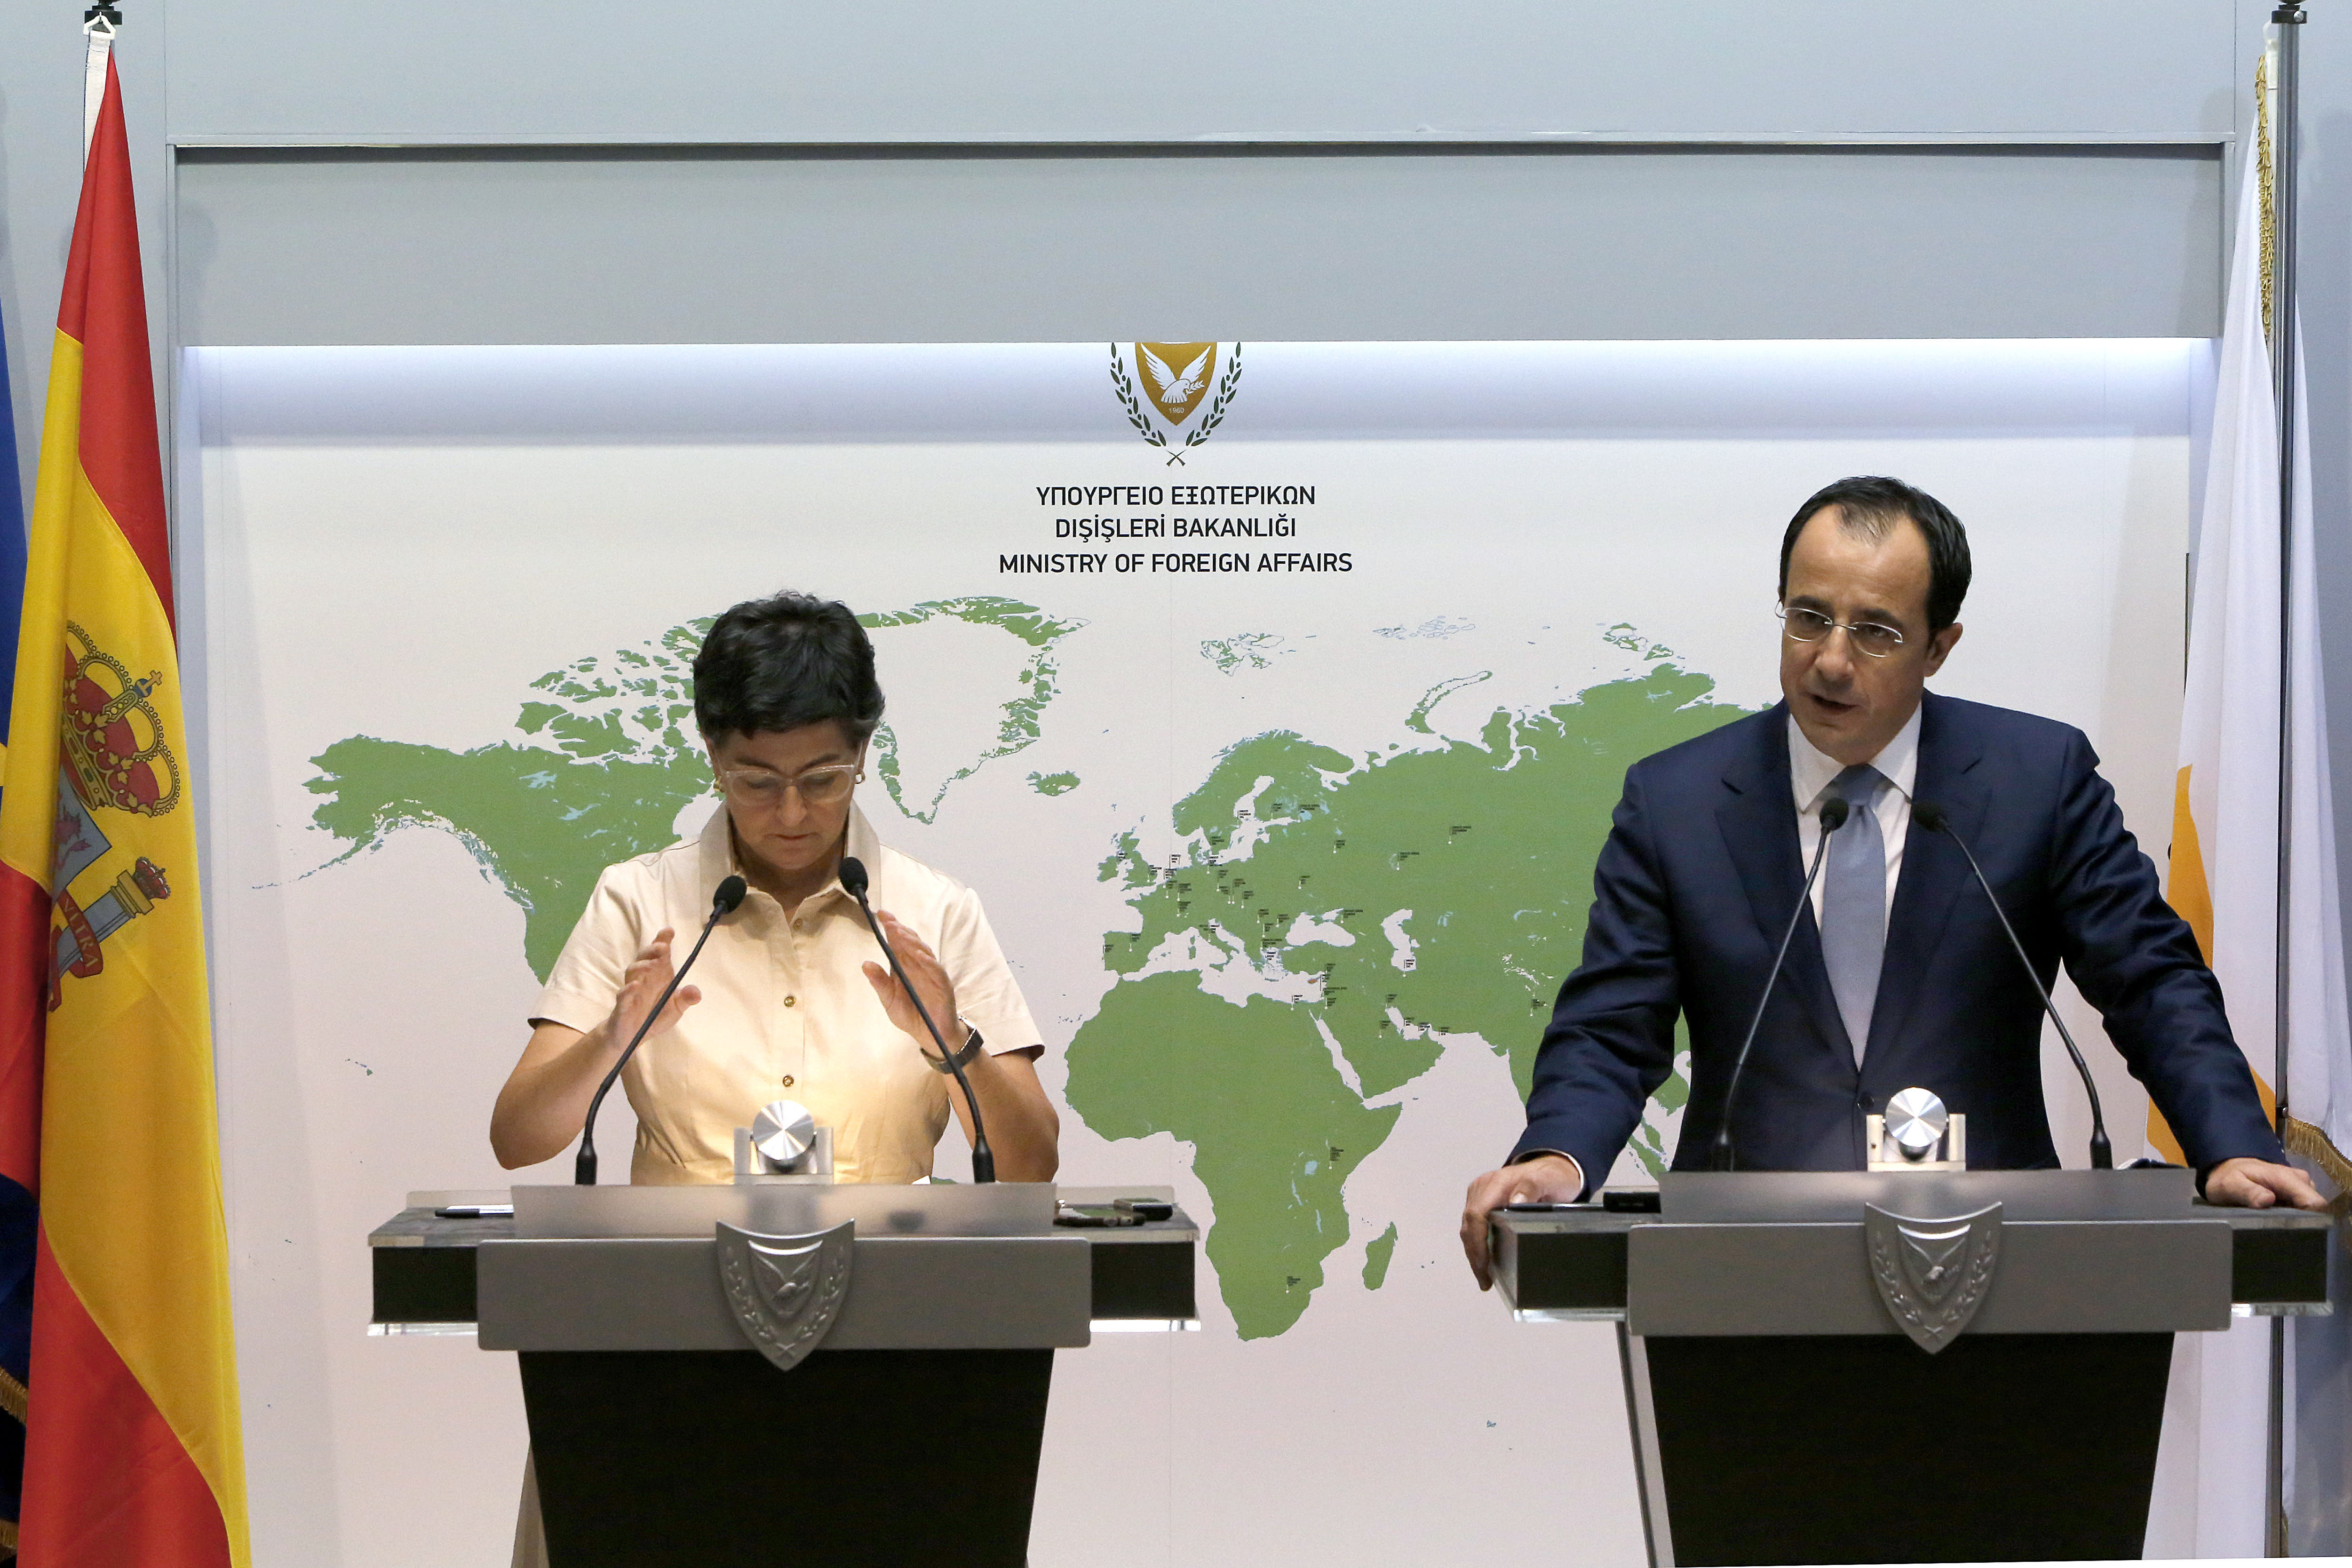 Spain's Foreign Minister Arancha Gonzalez Laya, left, talks during a news conference with her Cypriot countepart Nikos Christodoulides at the Cypriot Foreign Ministry building in the capital Nicosia, Cyprus, on Wednesday, Sept. 30, 2020. Laya said her visit aimed to convey her country's solidarity with Cyprus amid tensions over a Turkish gas search in waters were Cyprus claims exclusive economic rights. (AP Photo/Petros Karadjias)